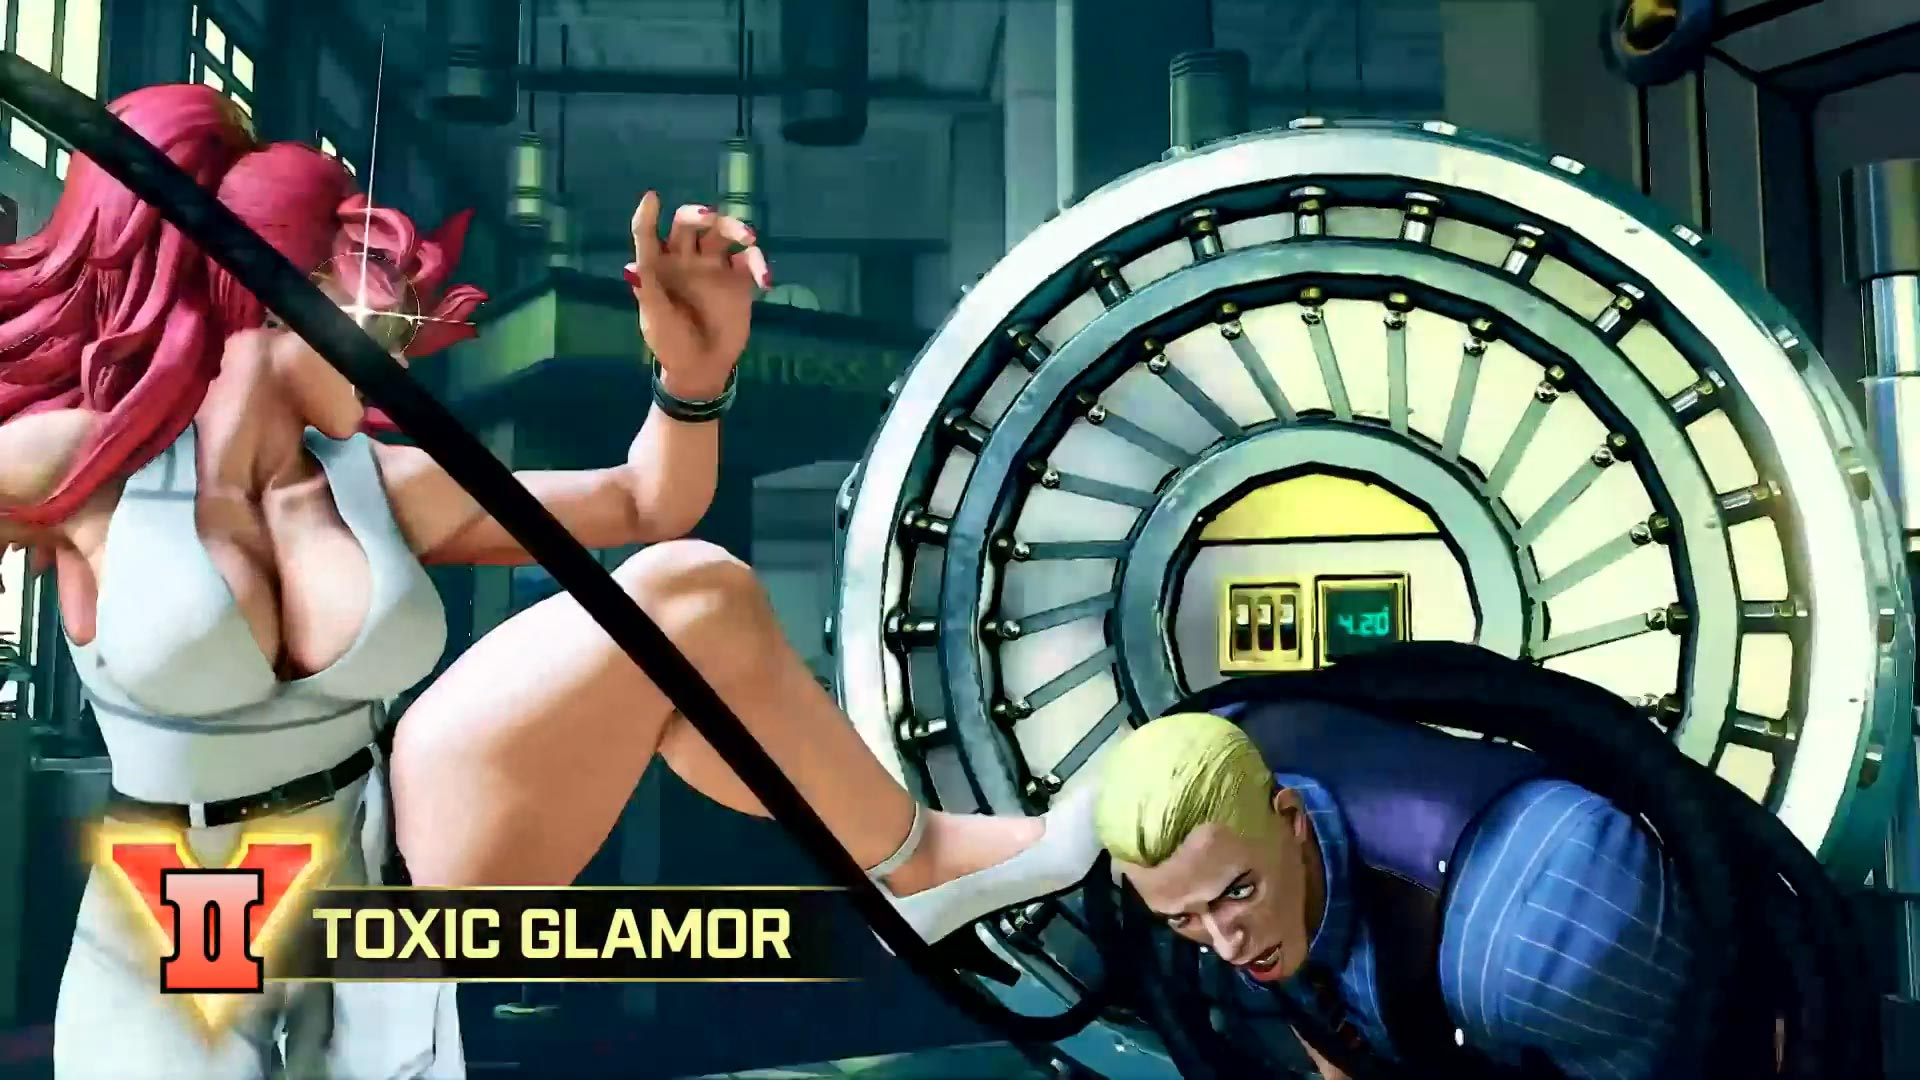 Street Fighter 5 leaked gallery of E. Honda, Lucia and Poison 20 out of 35 image gallery